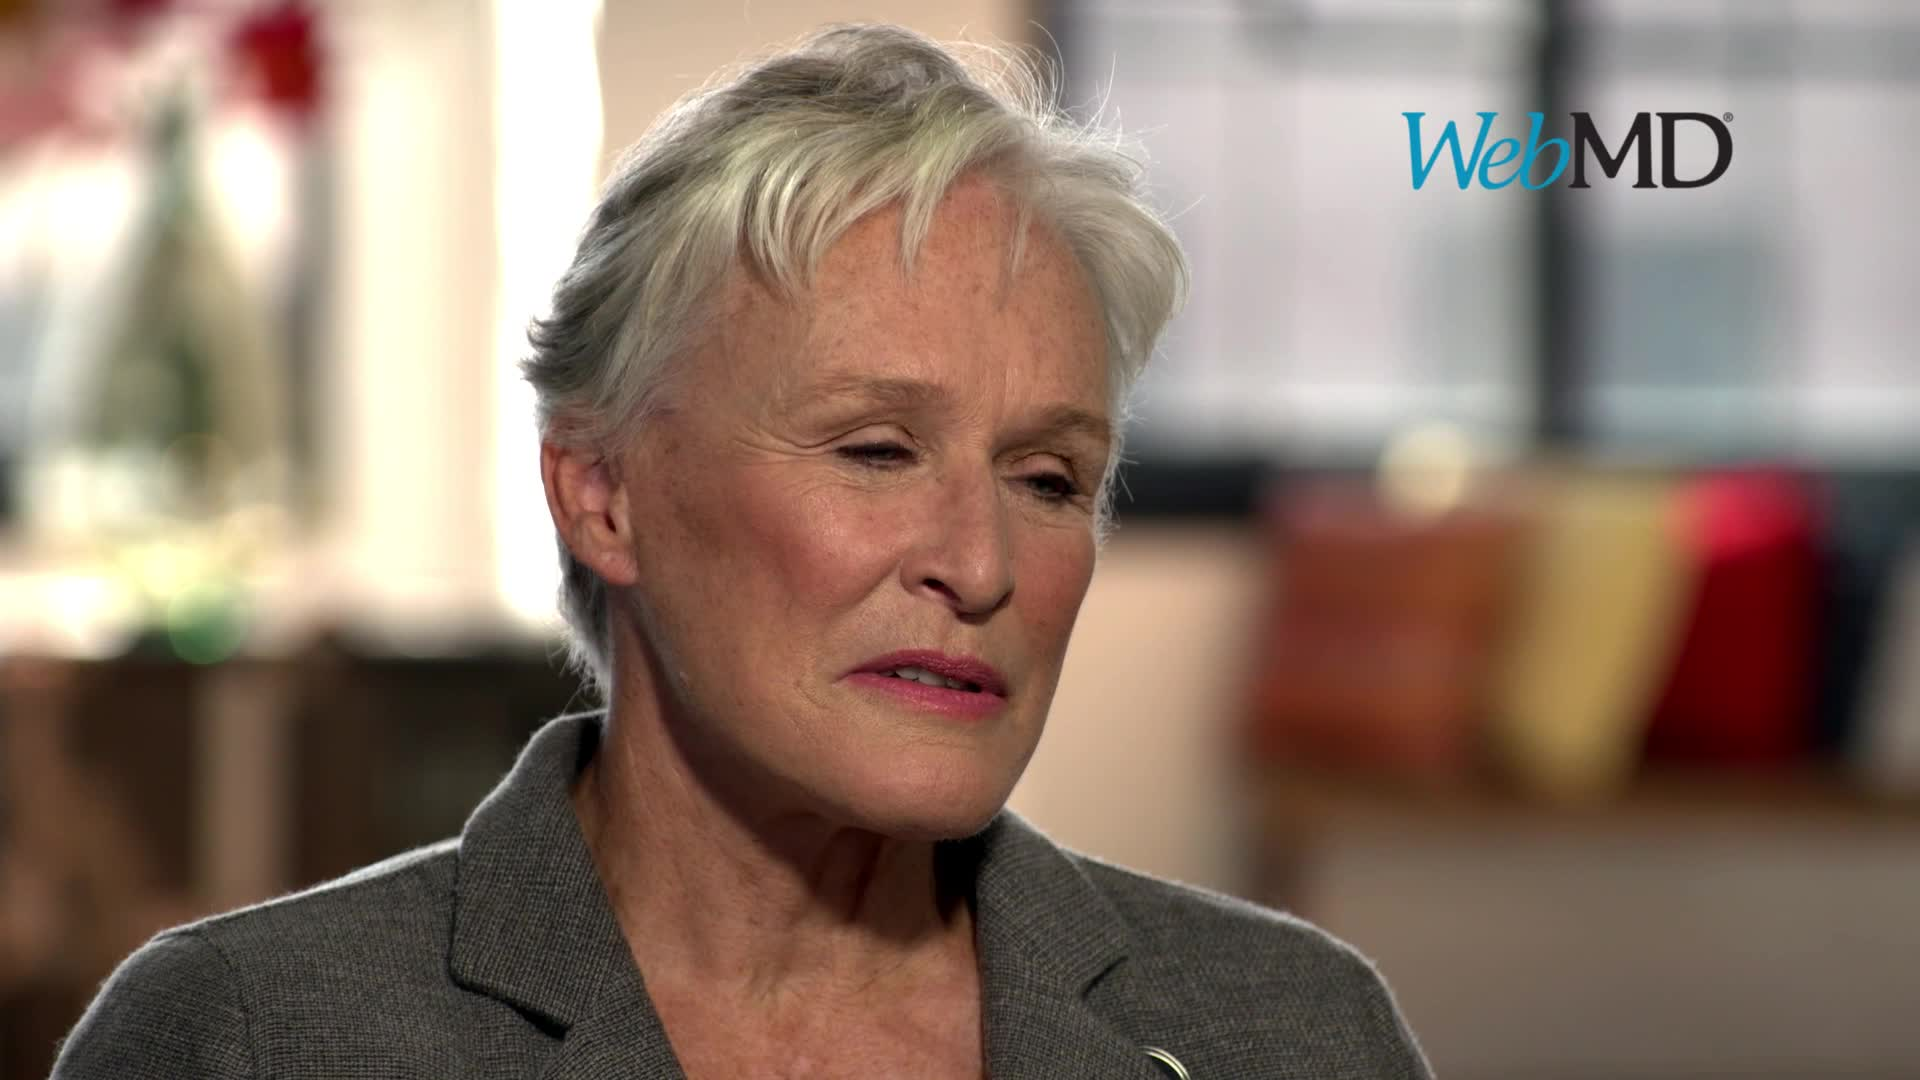 Good Morning America co-anchor and host of WebMD's Health Hero Awards Gala, Robin Roberts interviews WebMD Health Hero People's Choice Award Winner, Glenn Close. (Video: Rock'n Robin Productions)